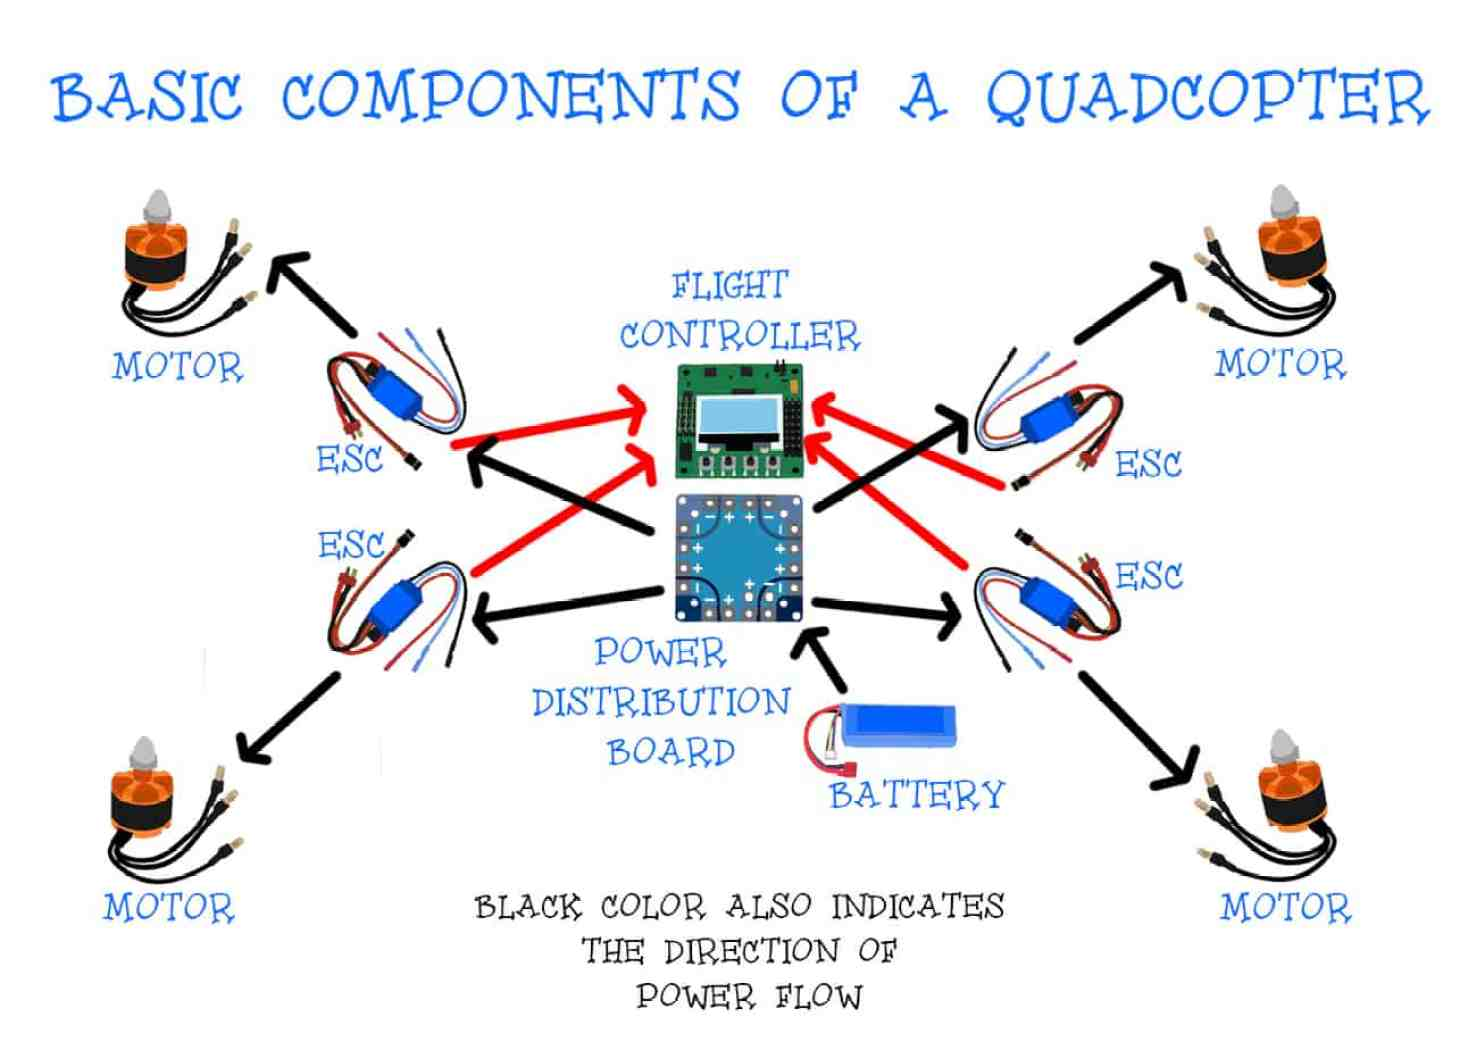 How quadcopters work: The components